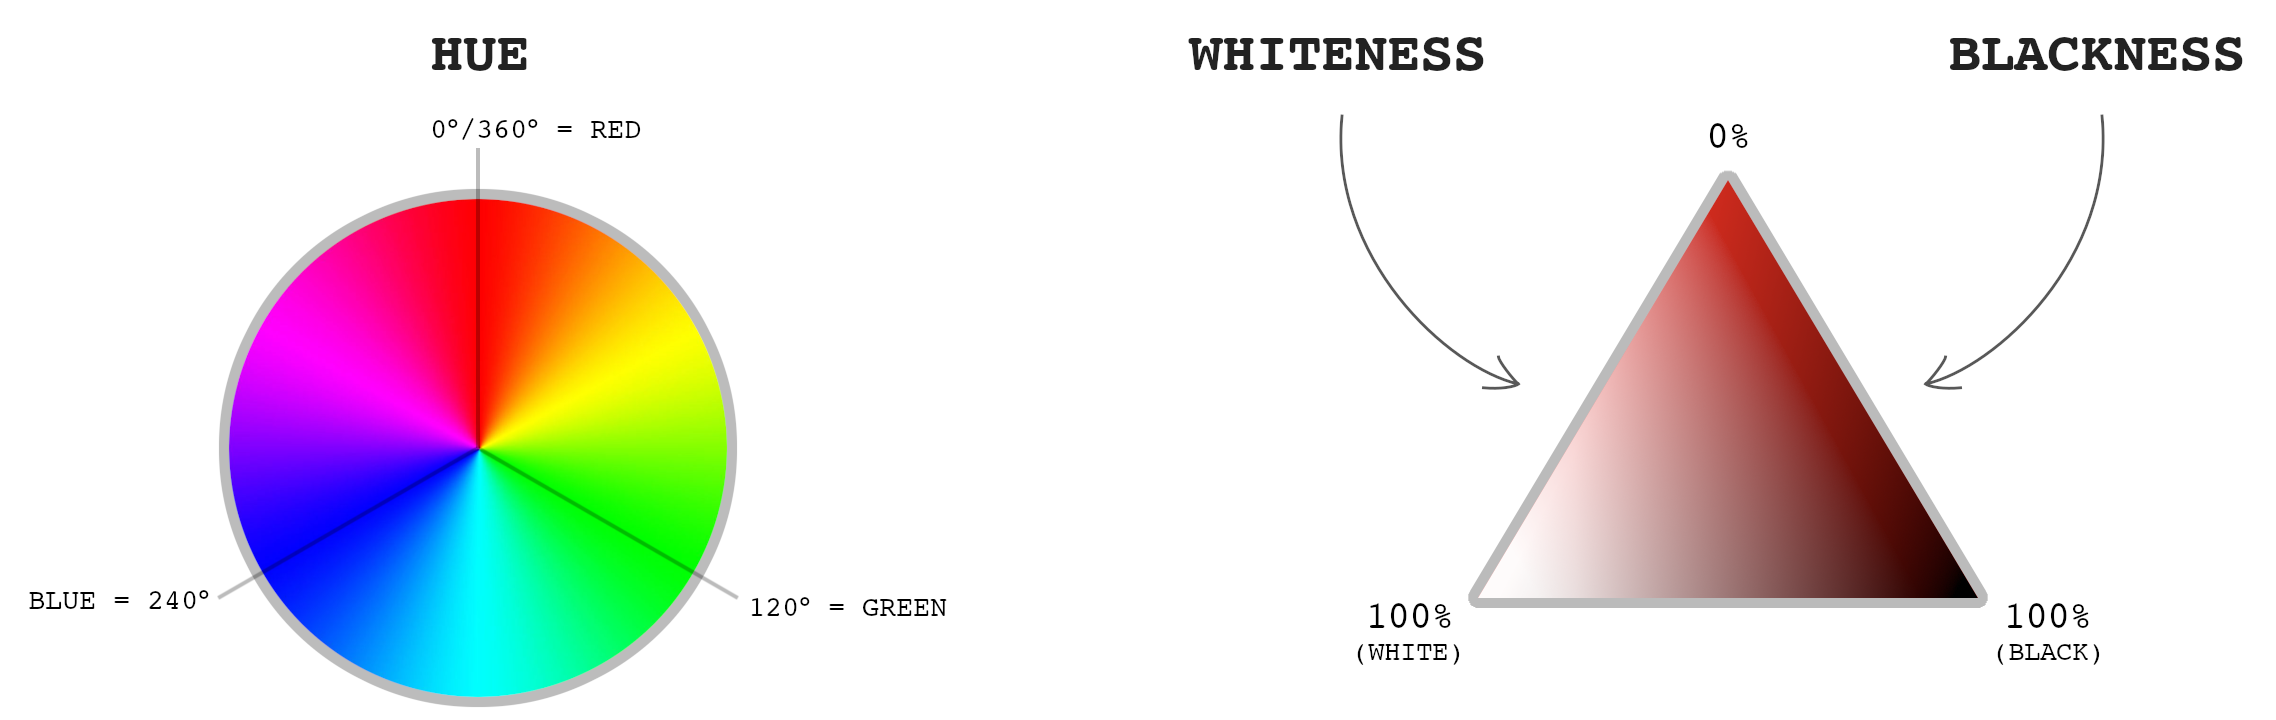 Description of how HWB is calculated with the color wheel and a triangle showcasing the different colors depending on the whiteness and darkness value from 0% to 100%